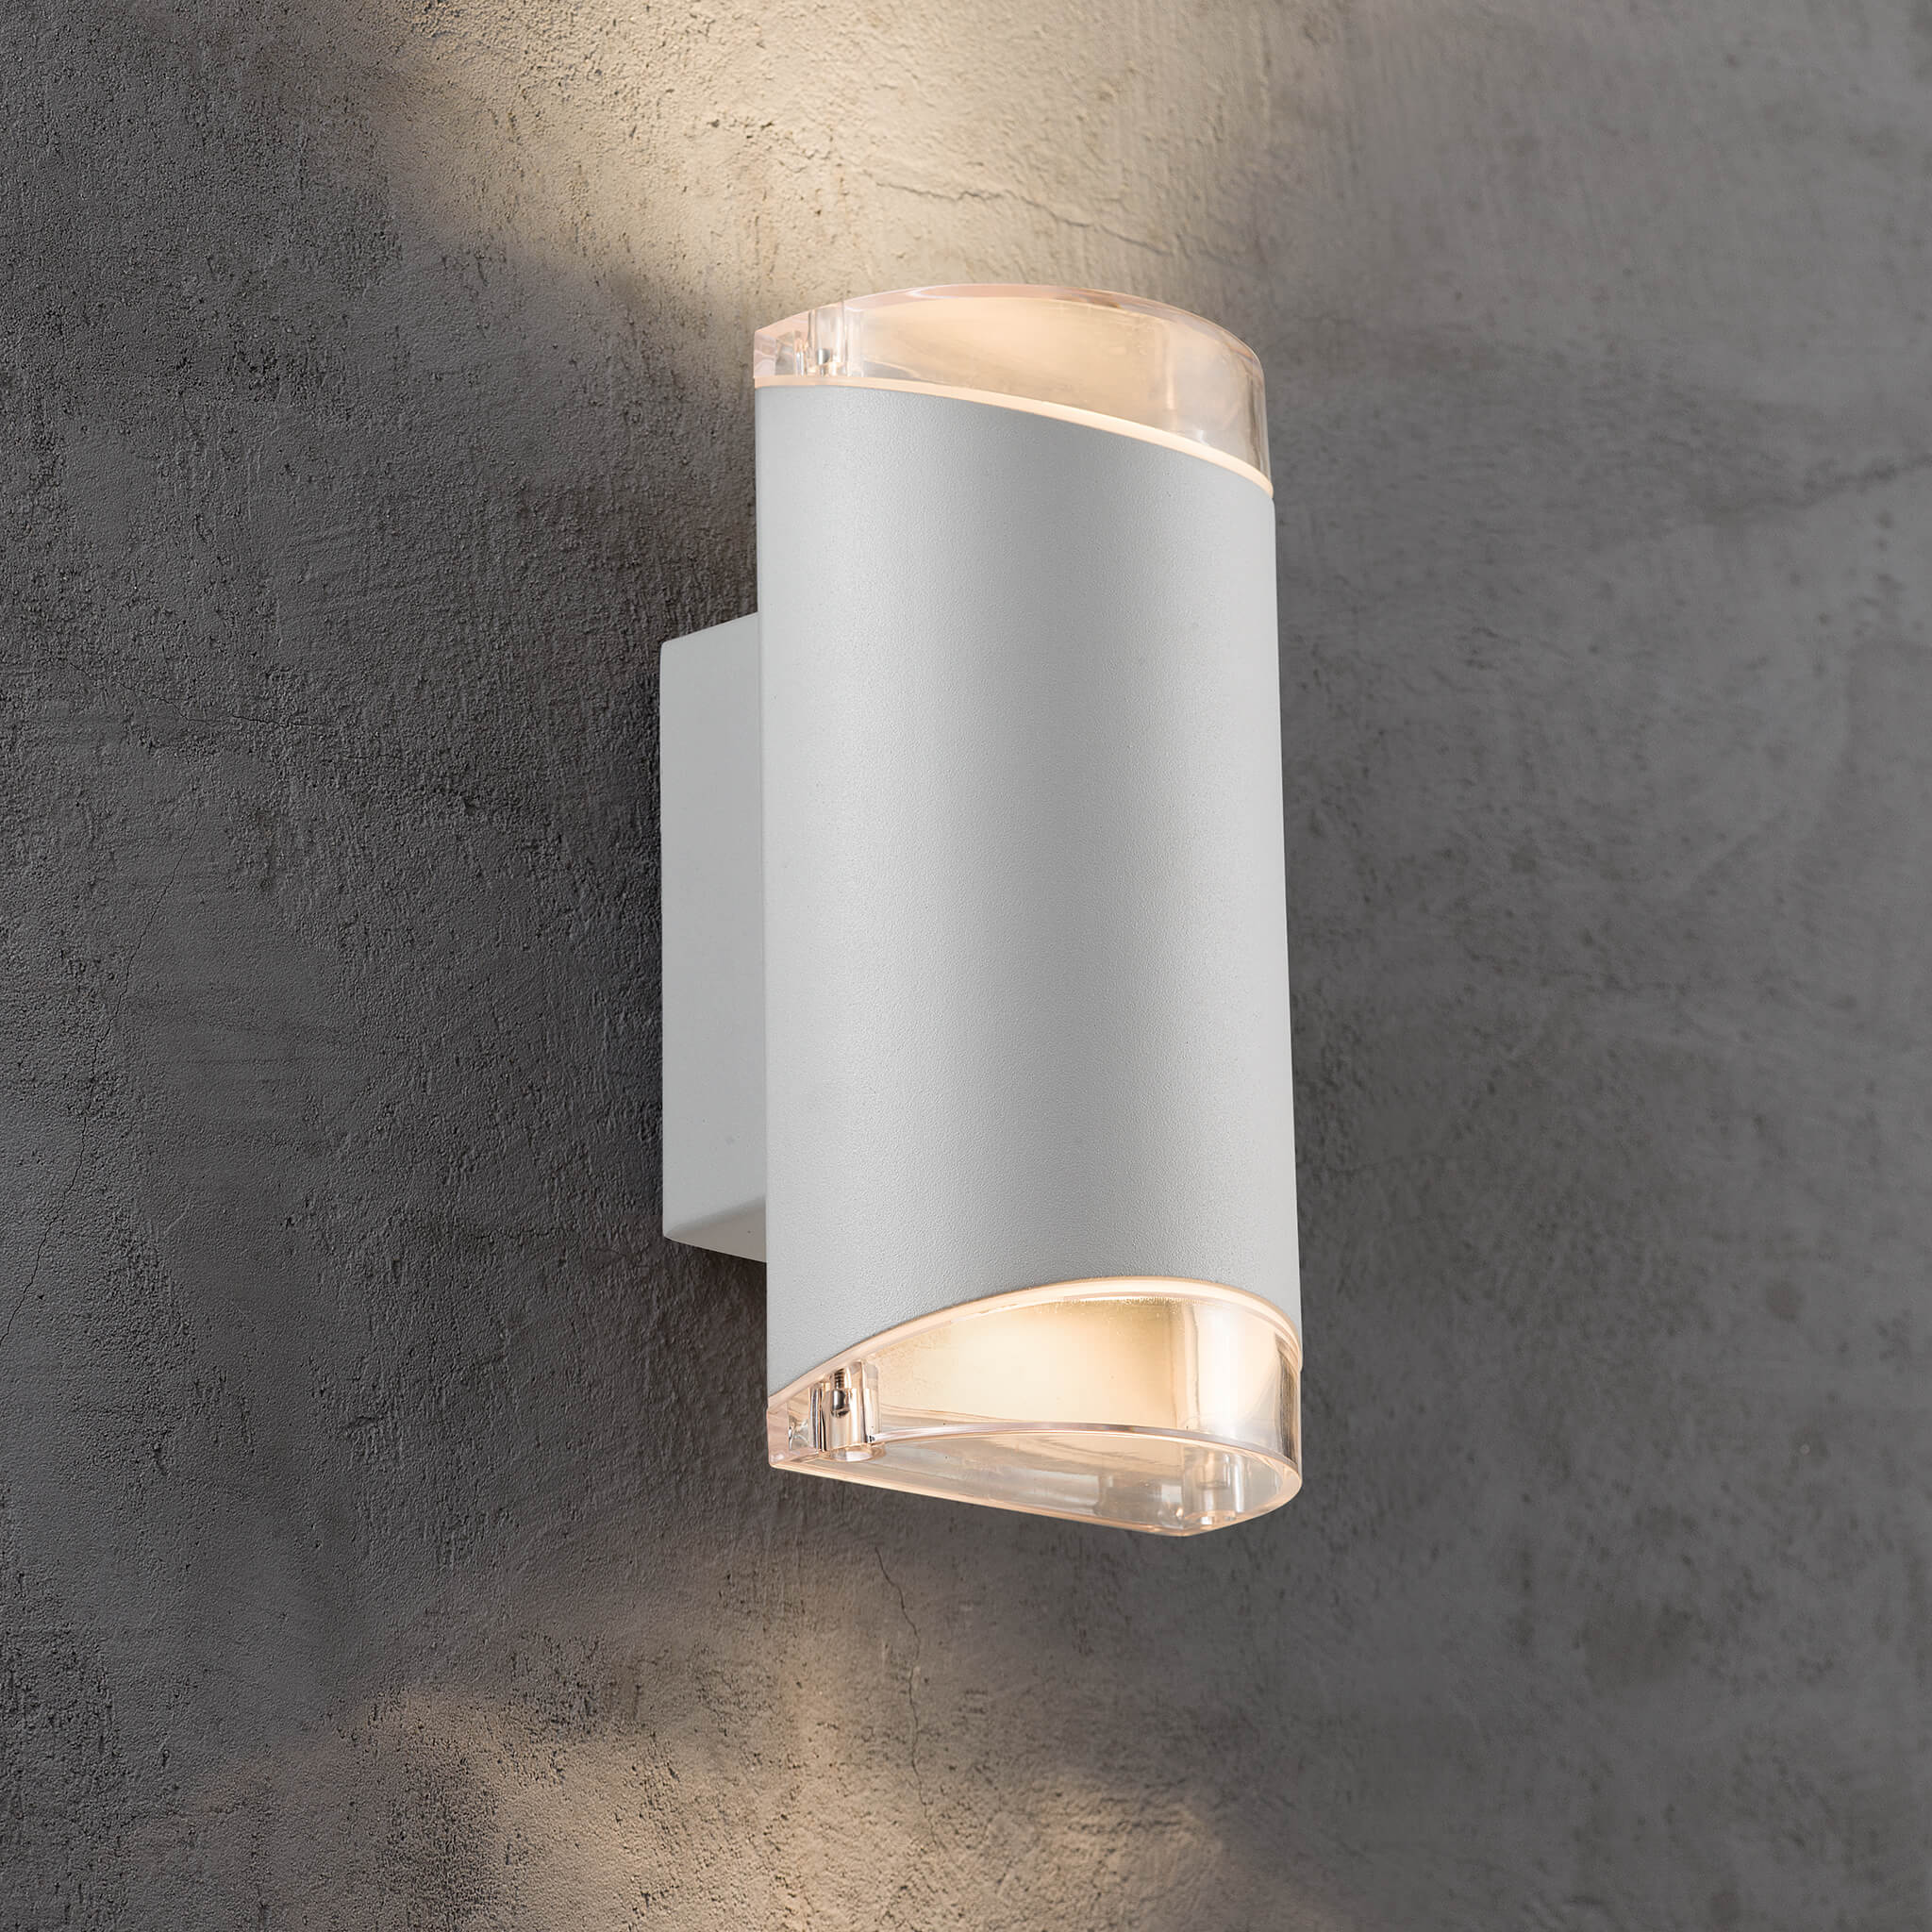 Nordlux Arn Up Down Outdoor Wall Light Lampsy